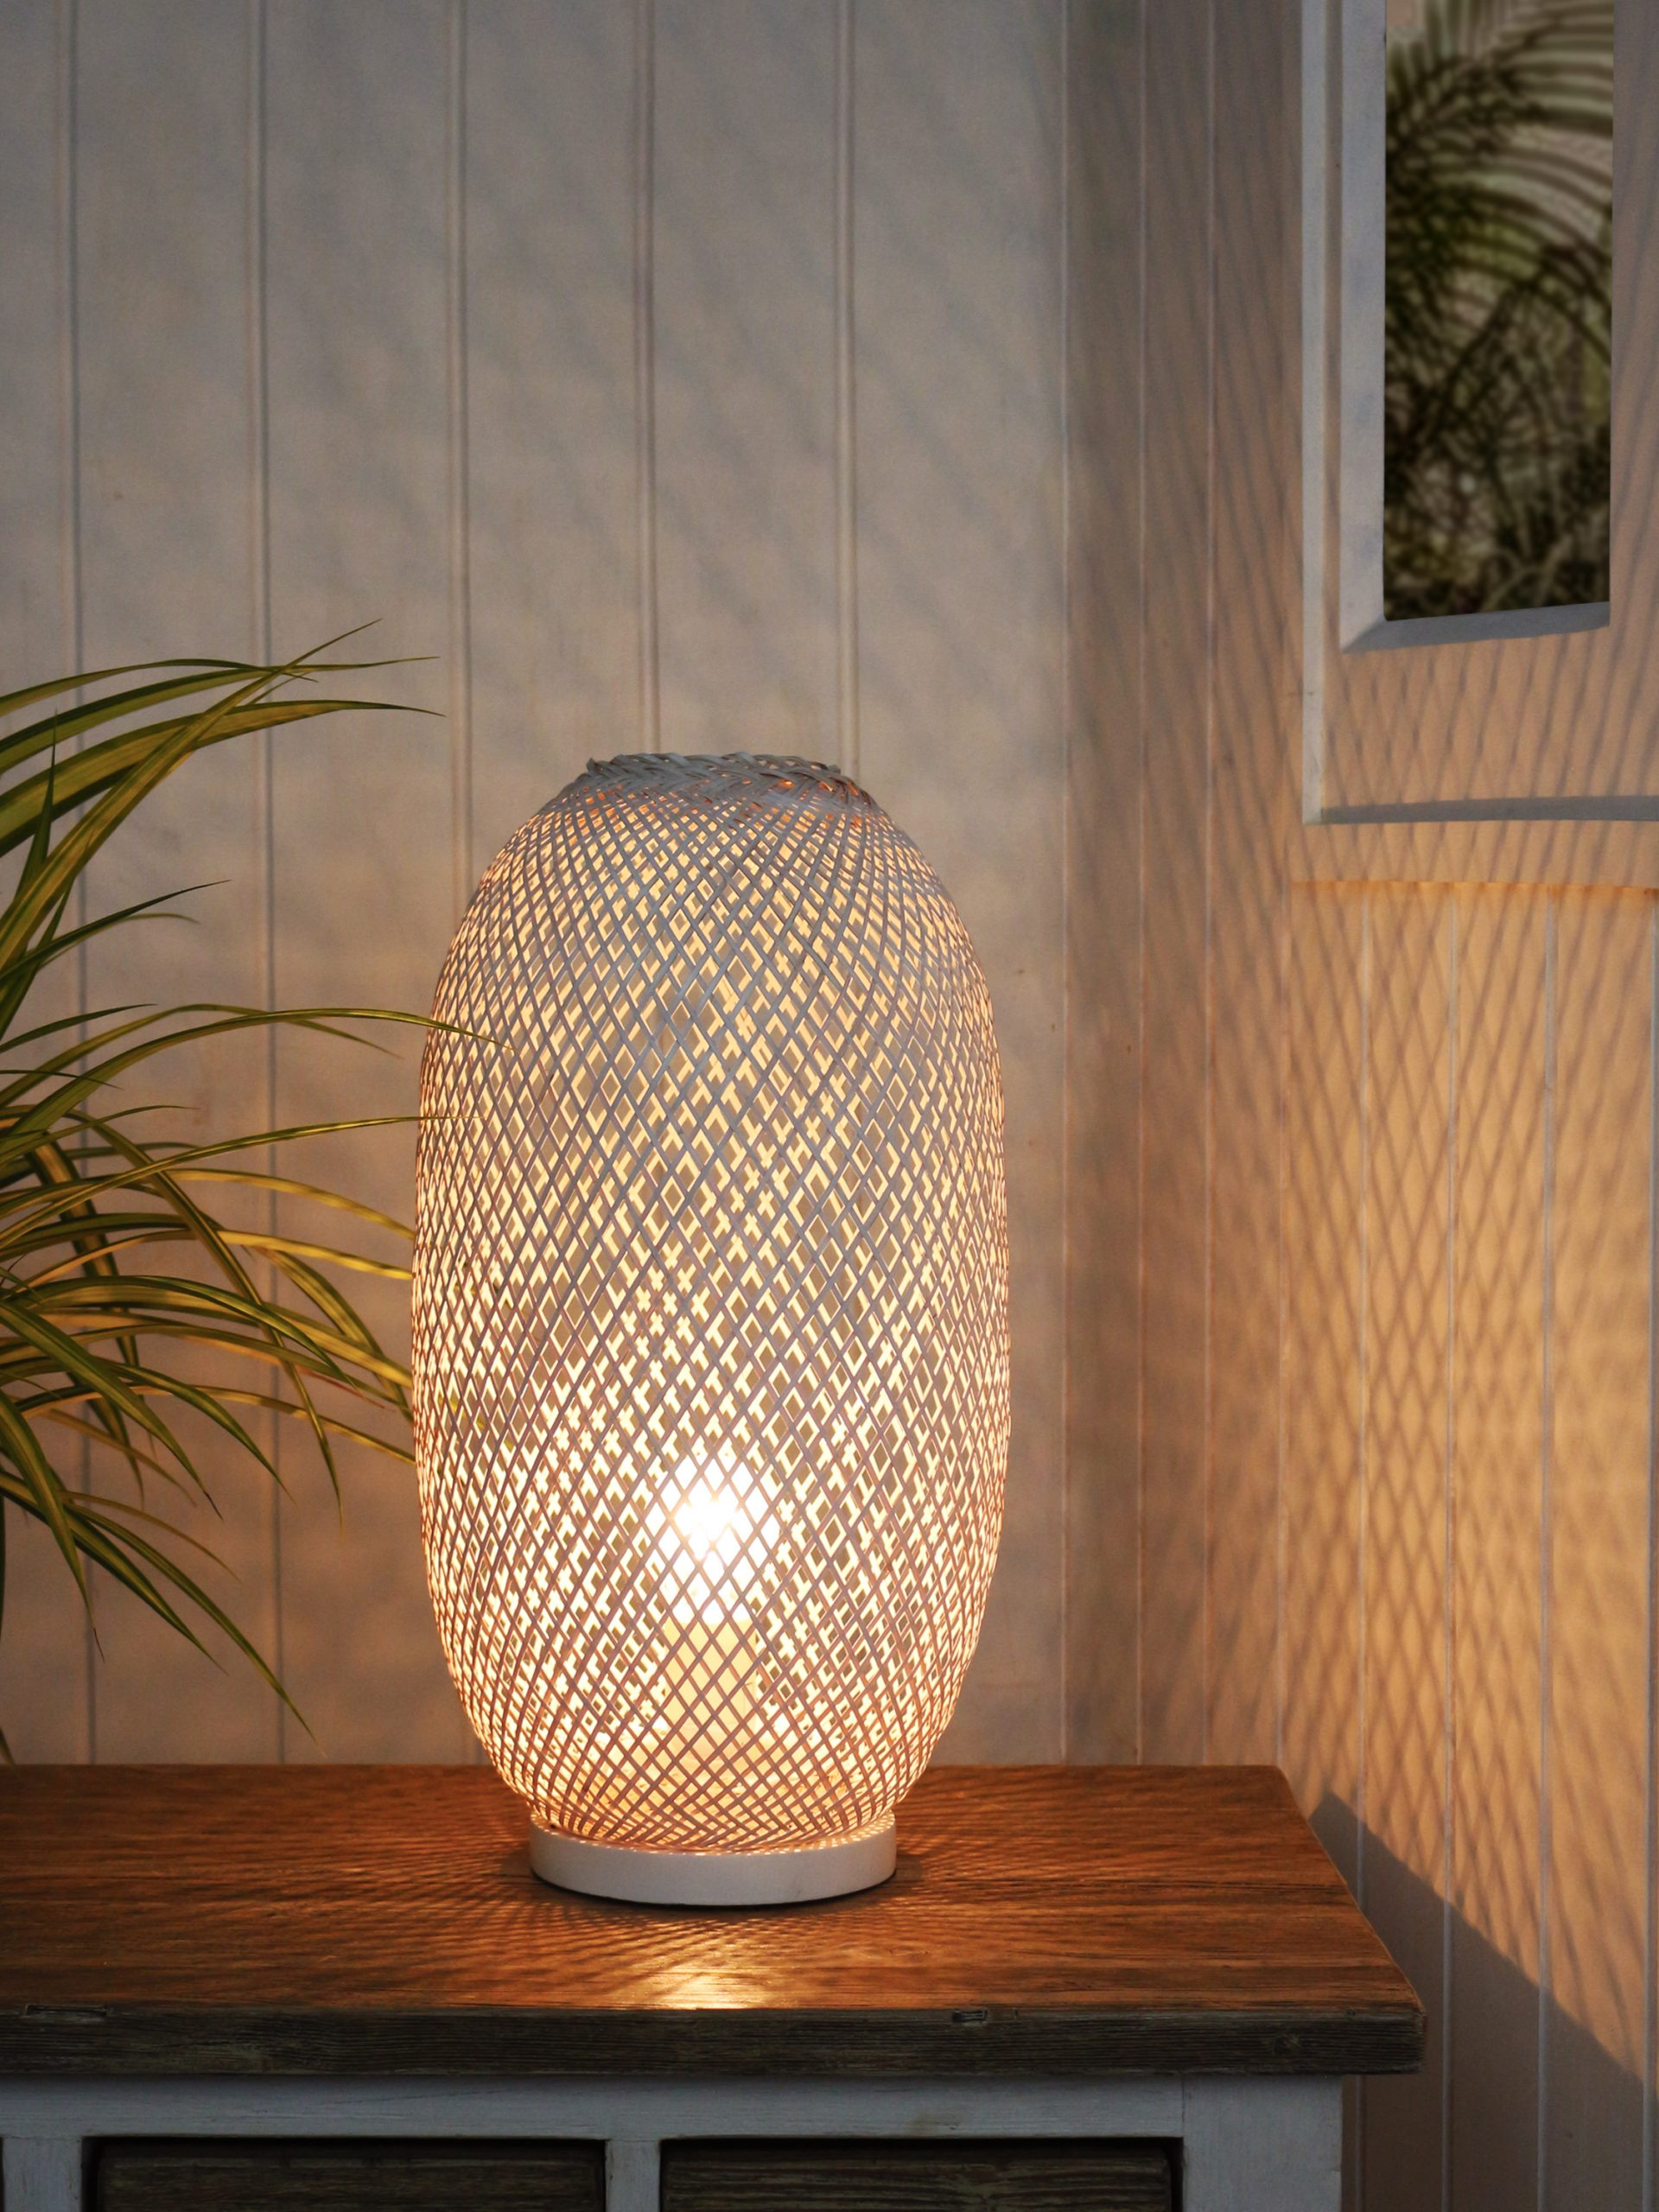 Bamboo Nest table lamp product photo #1